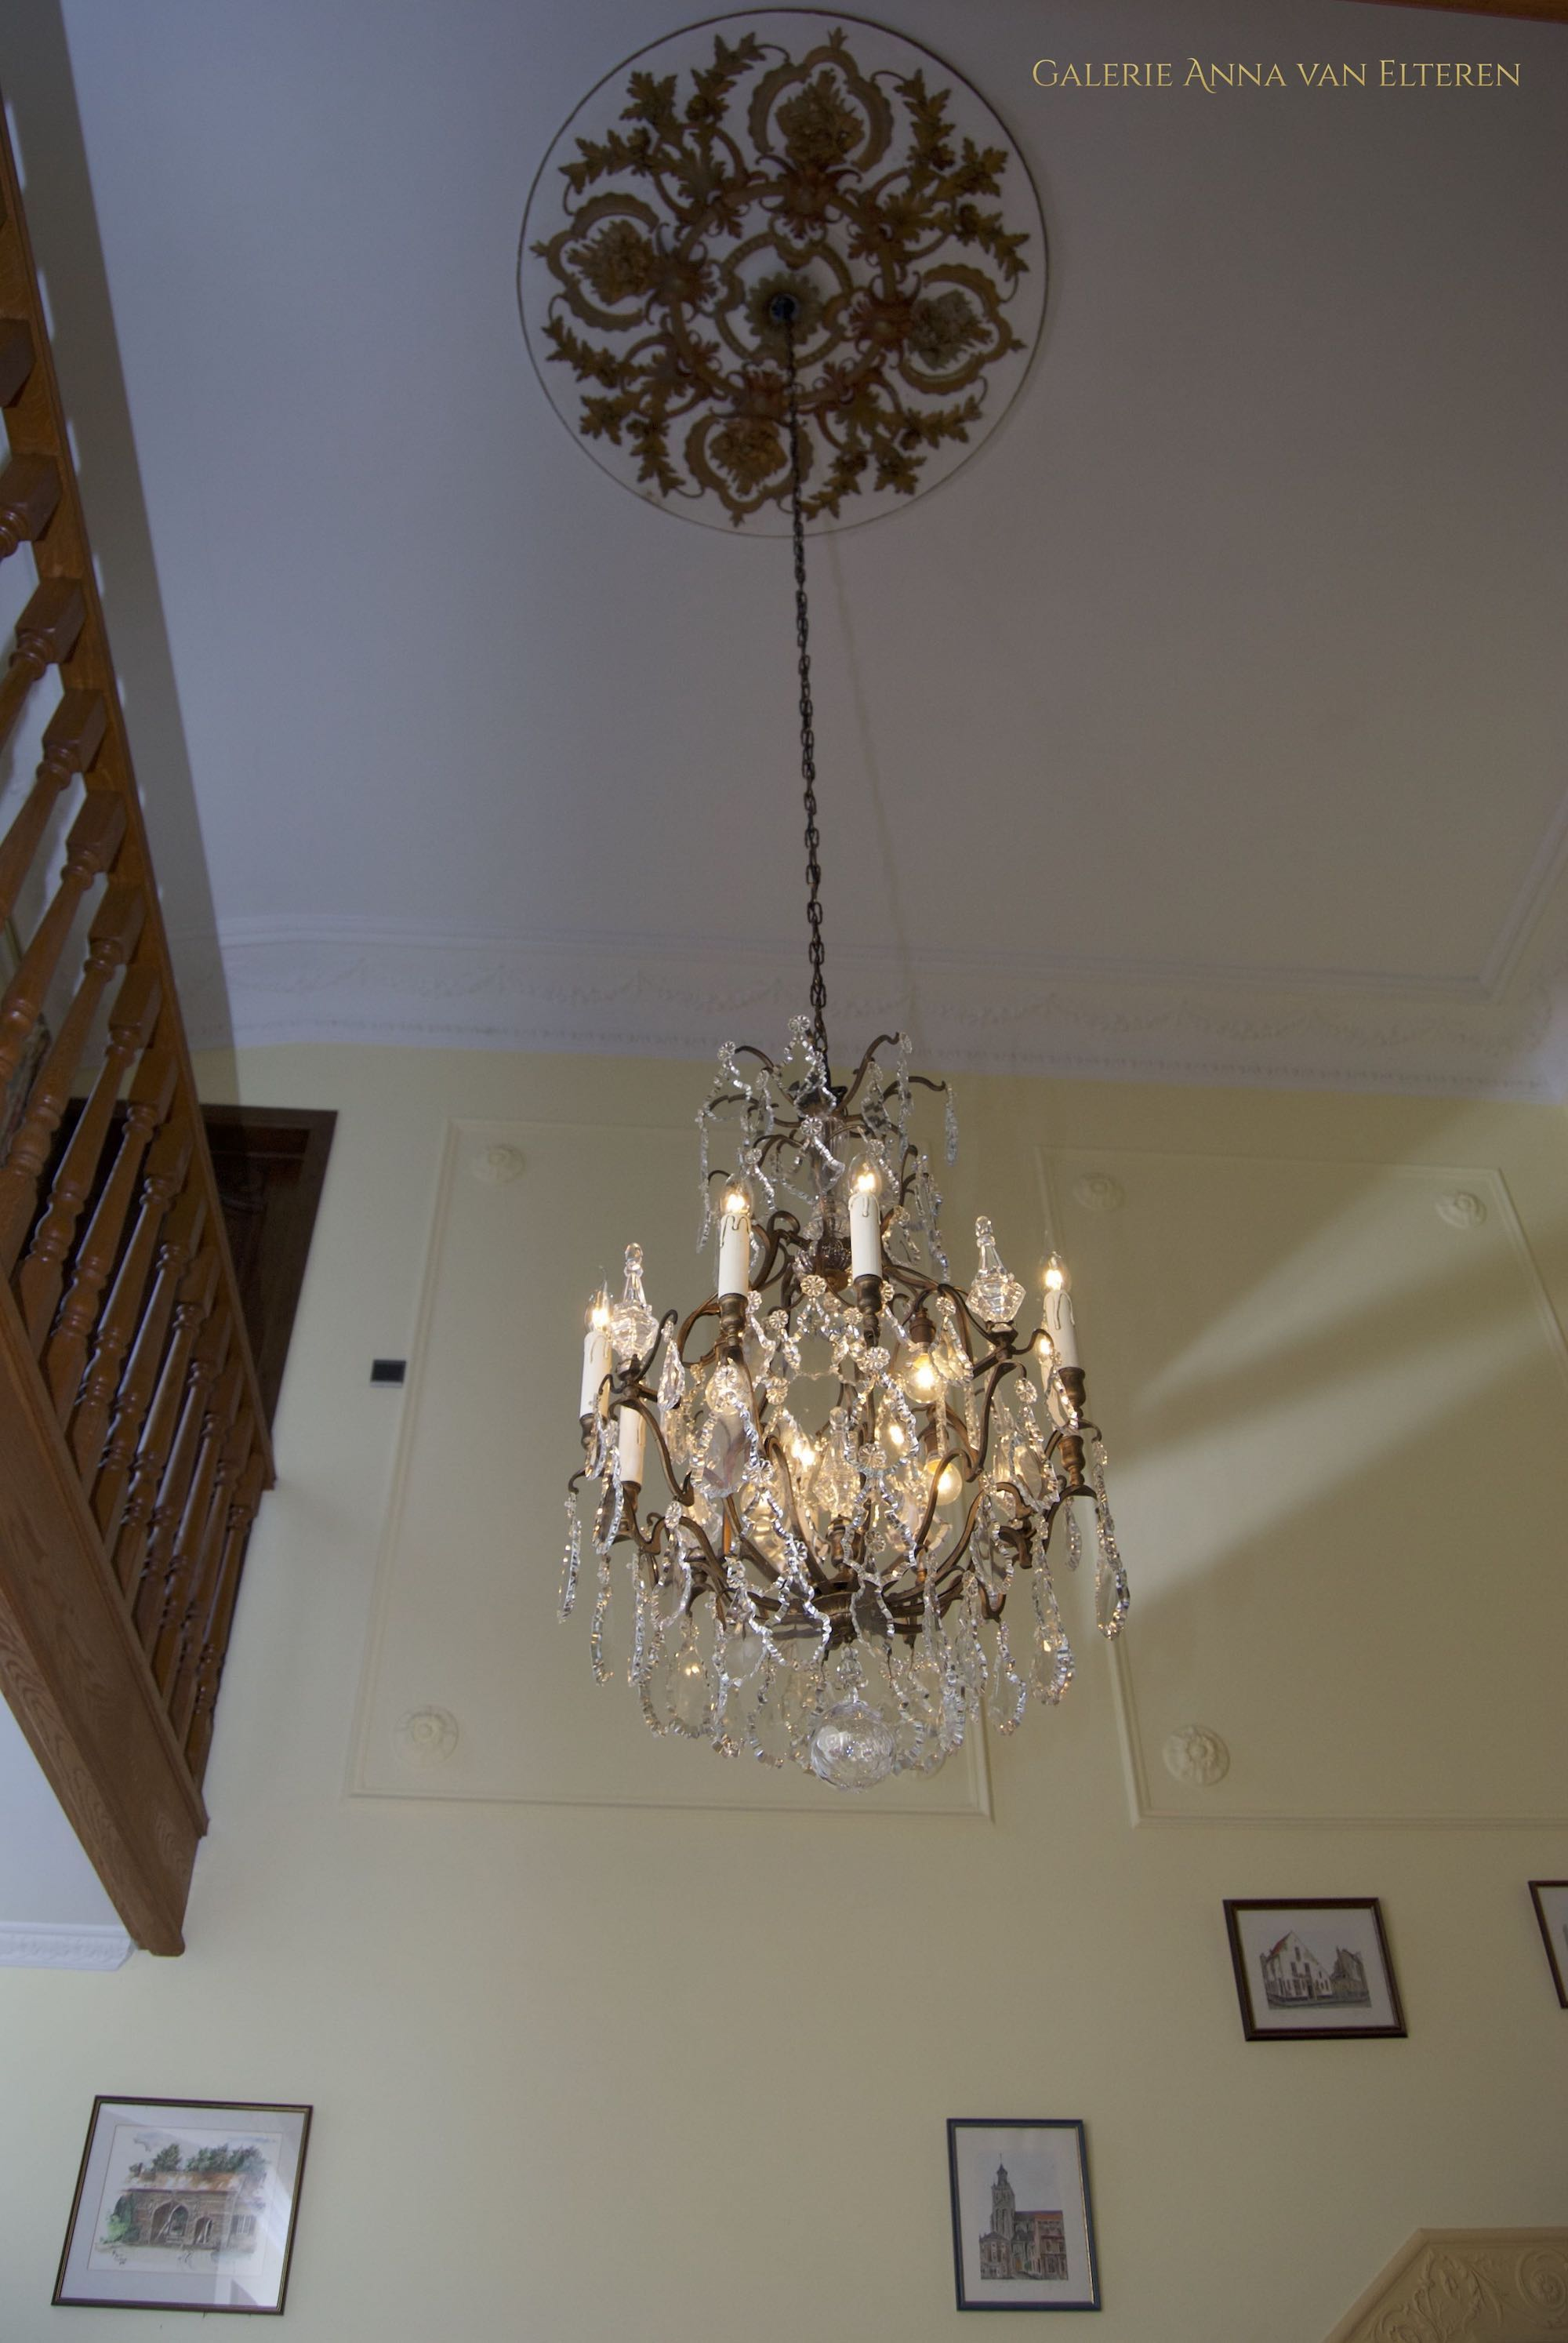 Antique French chandelier in the stairwell